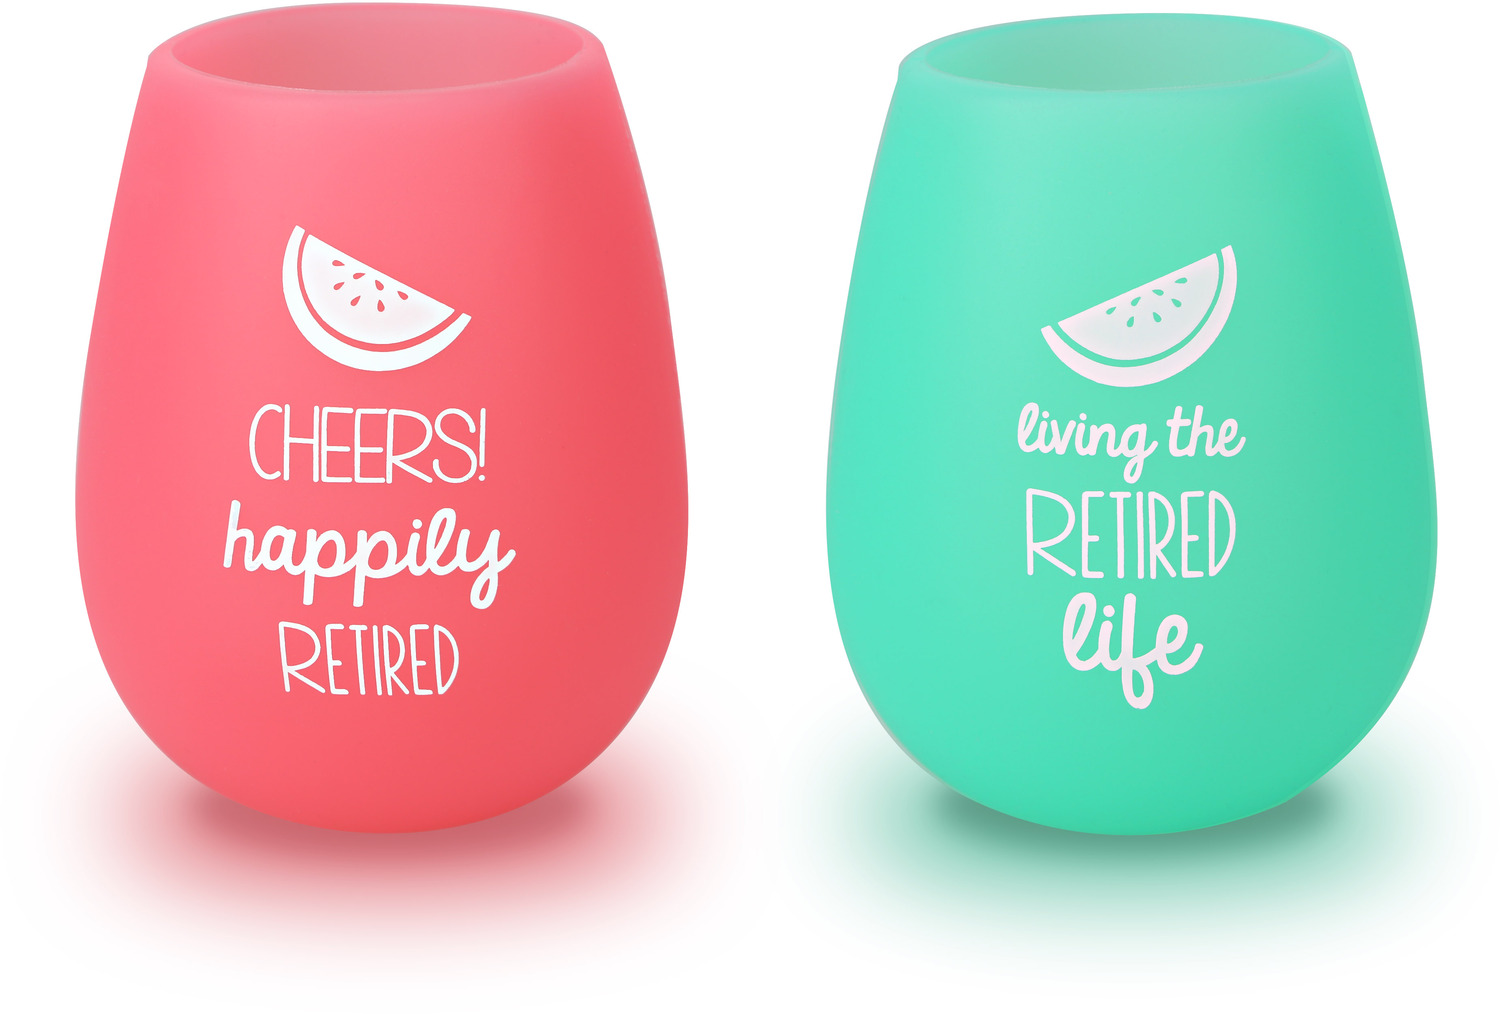 Happily Retired by Livin' on the Wedge - Happily Retired - 13 oz Silicone Wine Glasses (Set of 2)